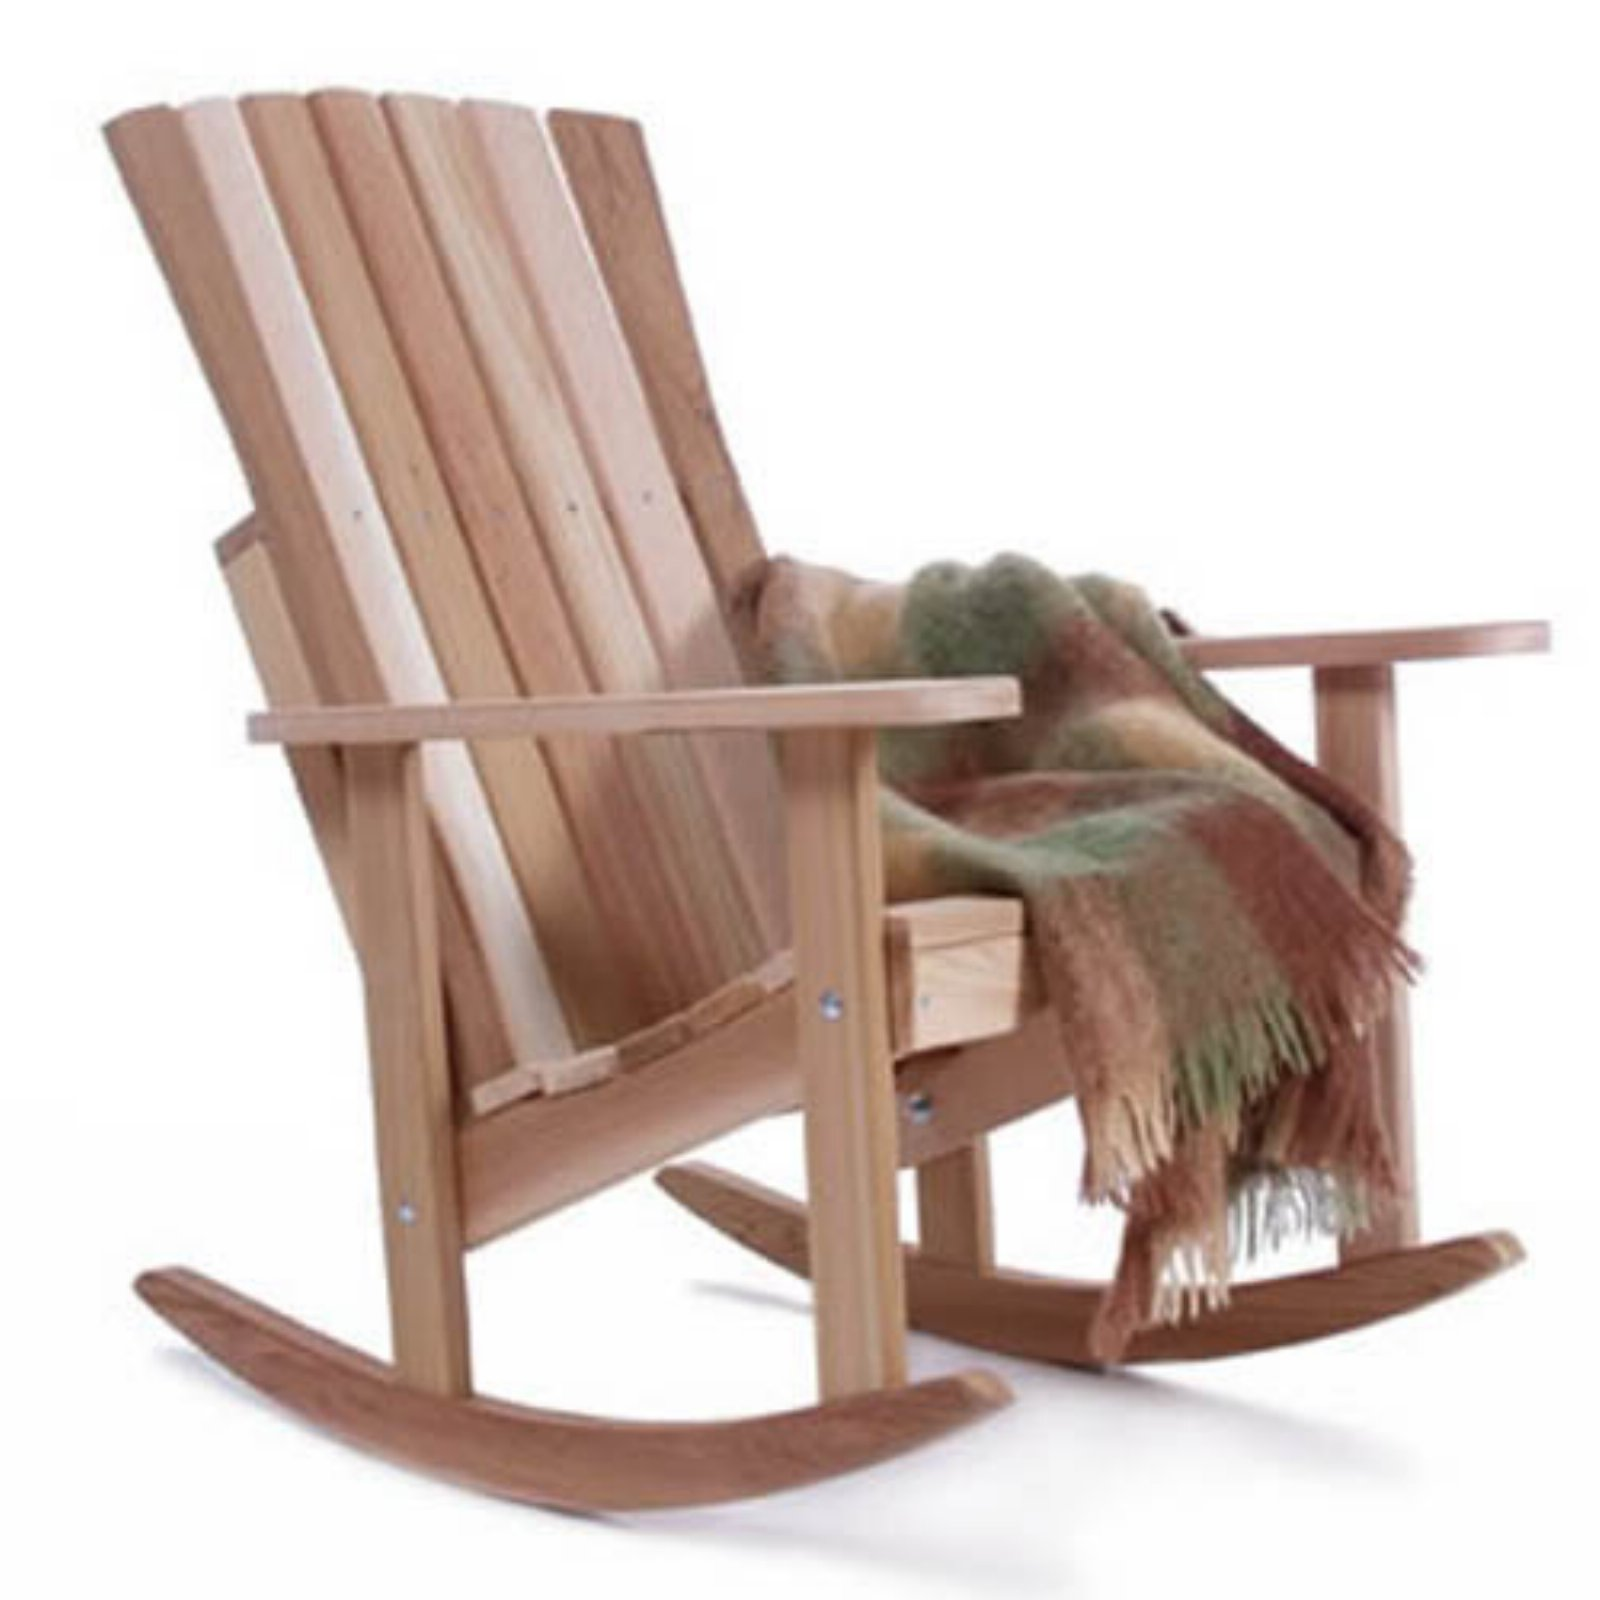 All Things Cedar Athena Adirondack Rocking Chair - Western Red Cedar